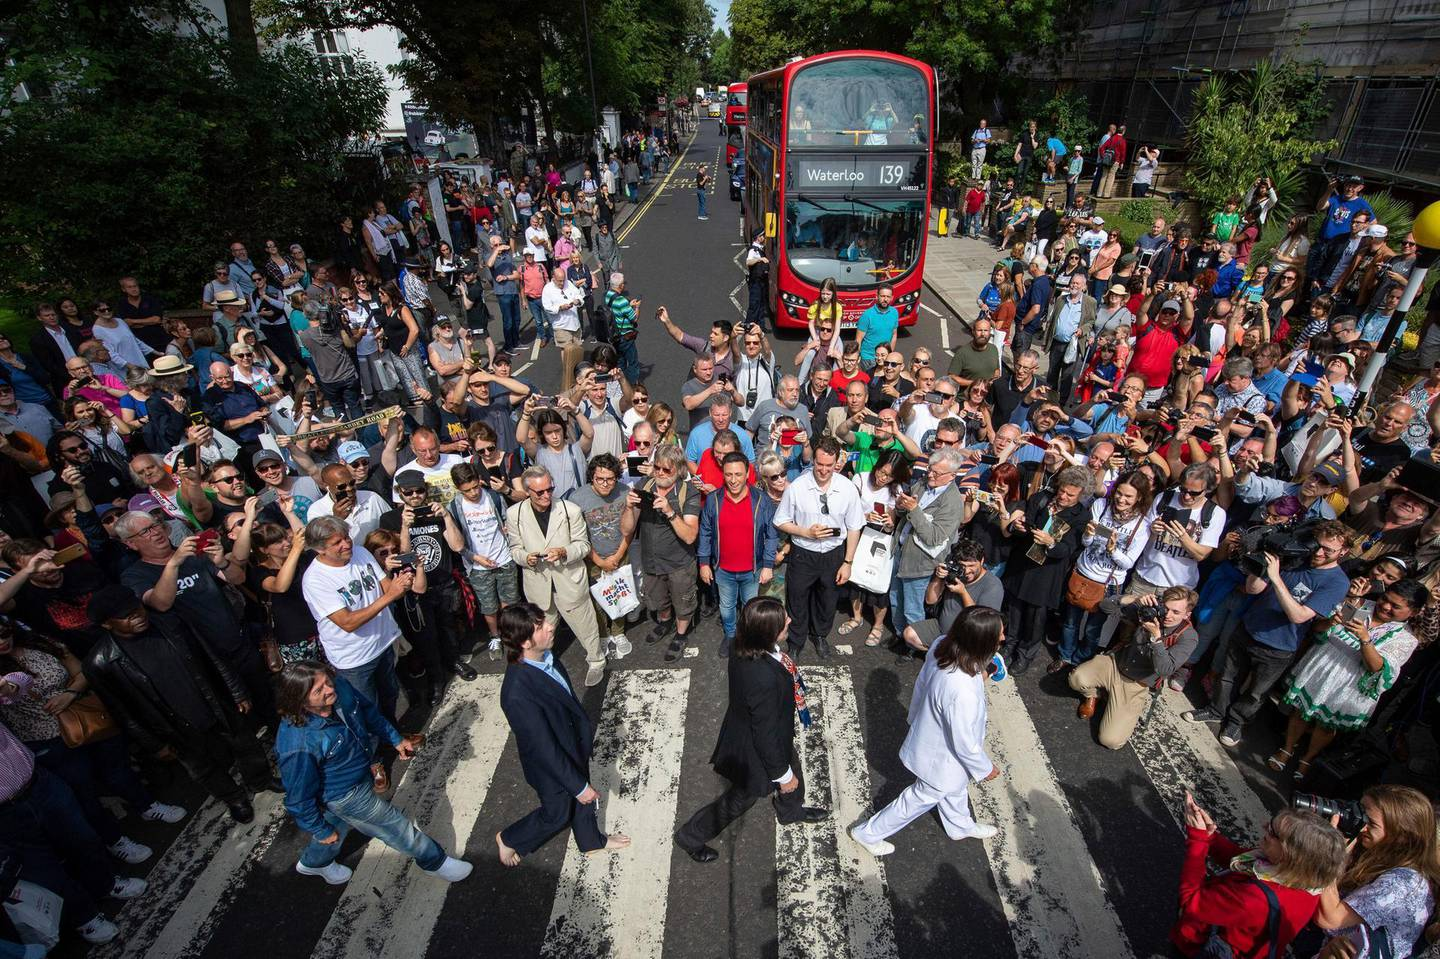 Beatles lookalikes are joined by thousands of fans gathered to walk across the Abbey Road zebra crossing, on the 50th anniversary of British pop musicians The Beatles doing it for the cover of their album 'Abbey Road' in St Johns Wood in London, Thursday, Aug. 8, 2019. They aimed to cross 50 years to the minute since the 'Fab Four' were photographed for the album.(Dominic Lipinski/PA via AP)